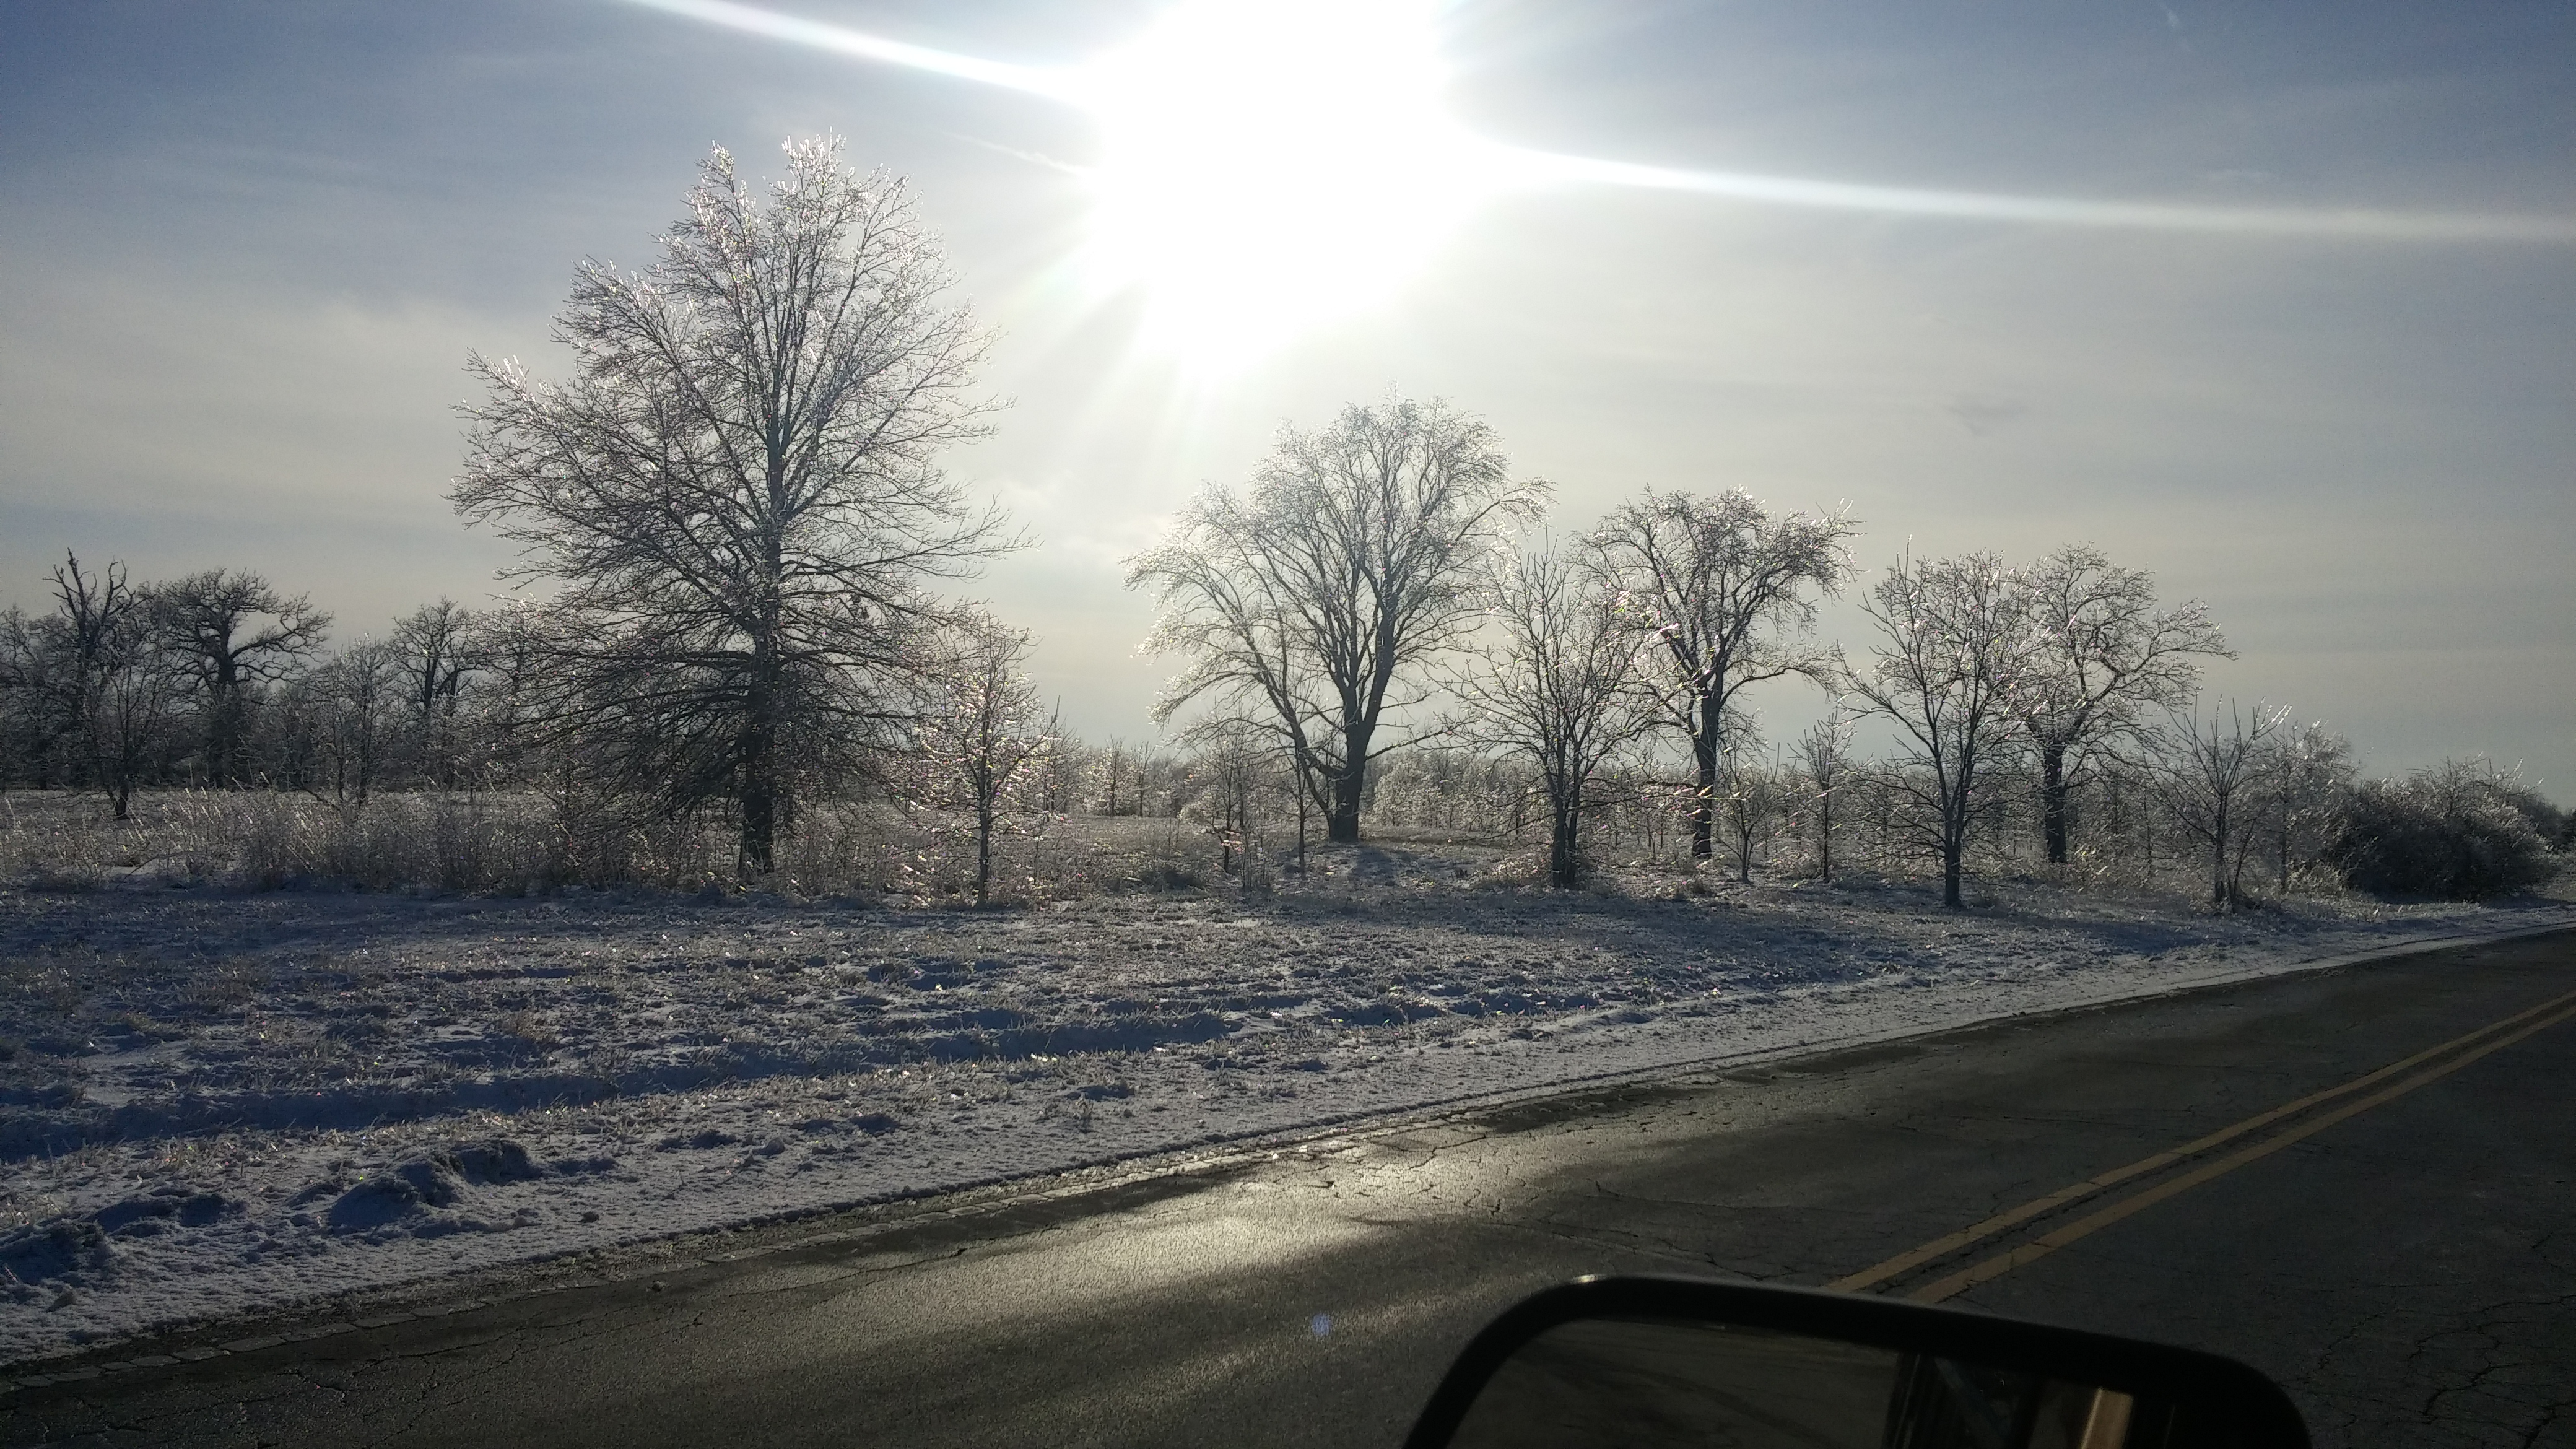 (2/2) It occurred just after an ice storm. nature, landscape, winter, sky, sun, tree, plant, snow Photo: Greg Sellberg